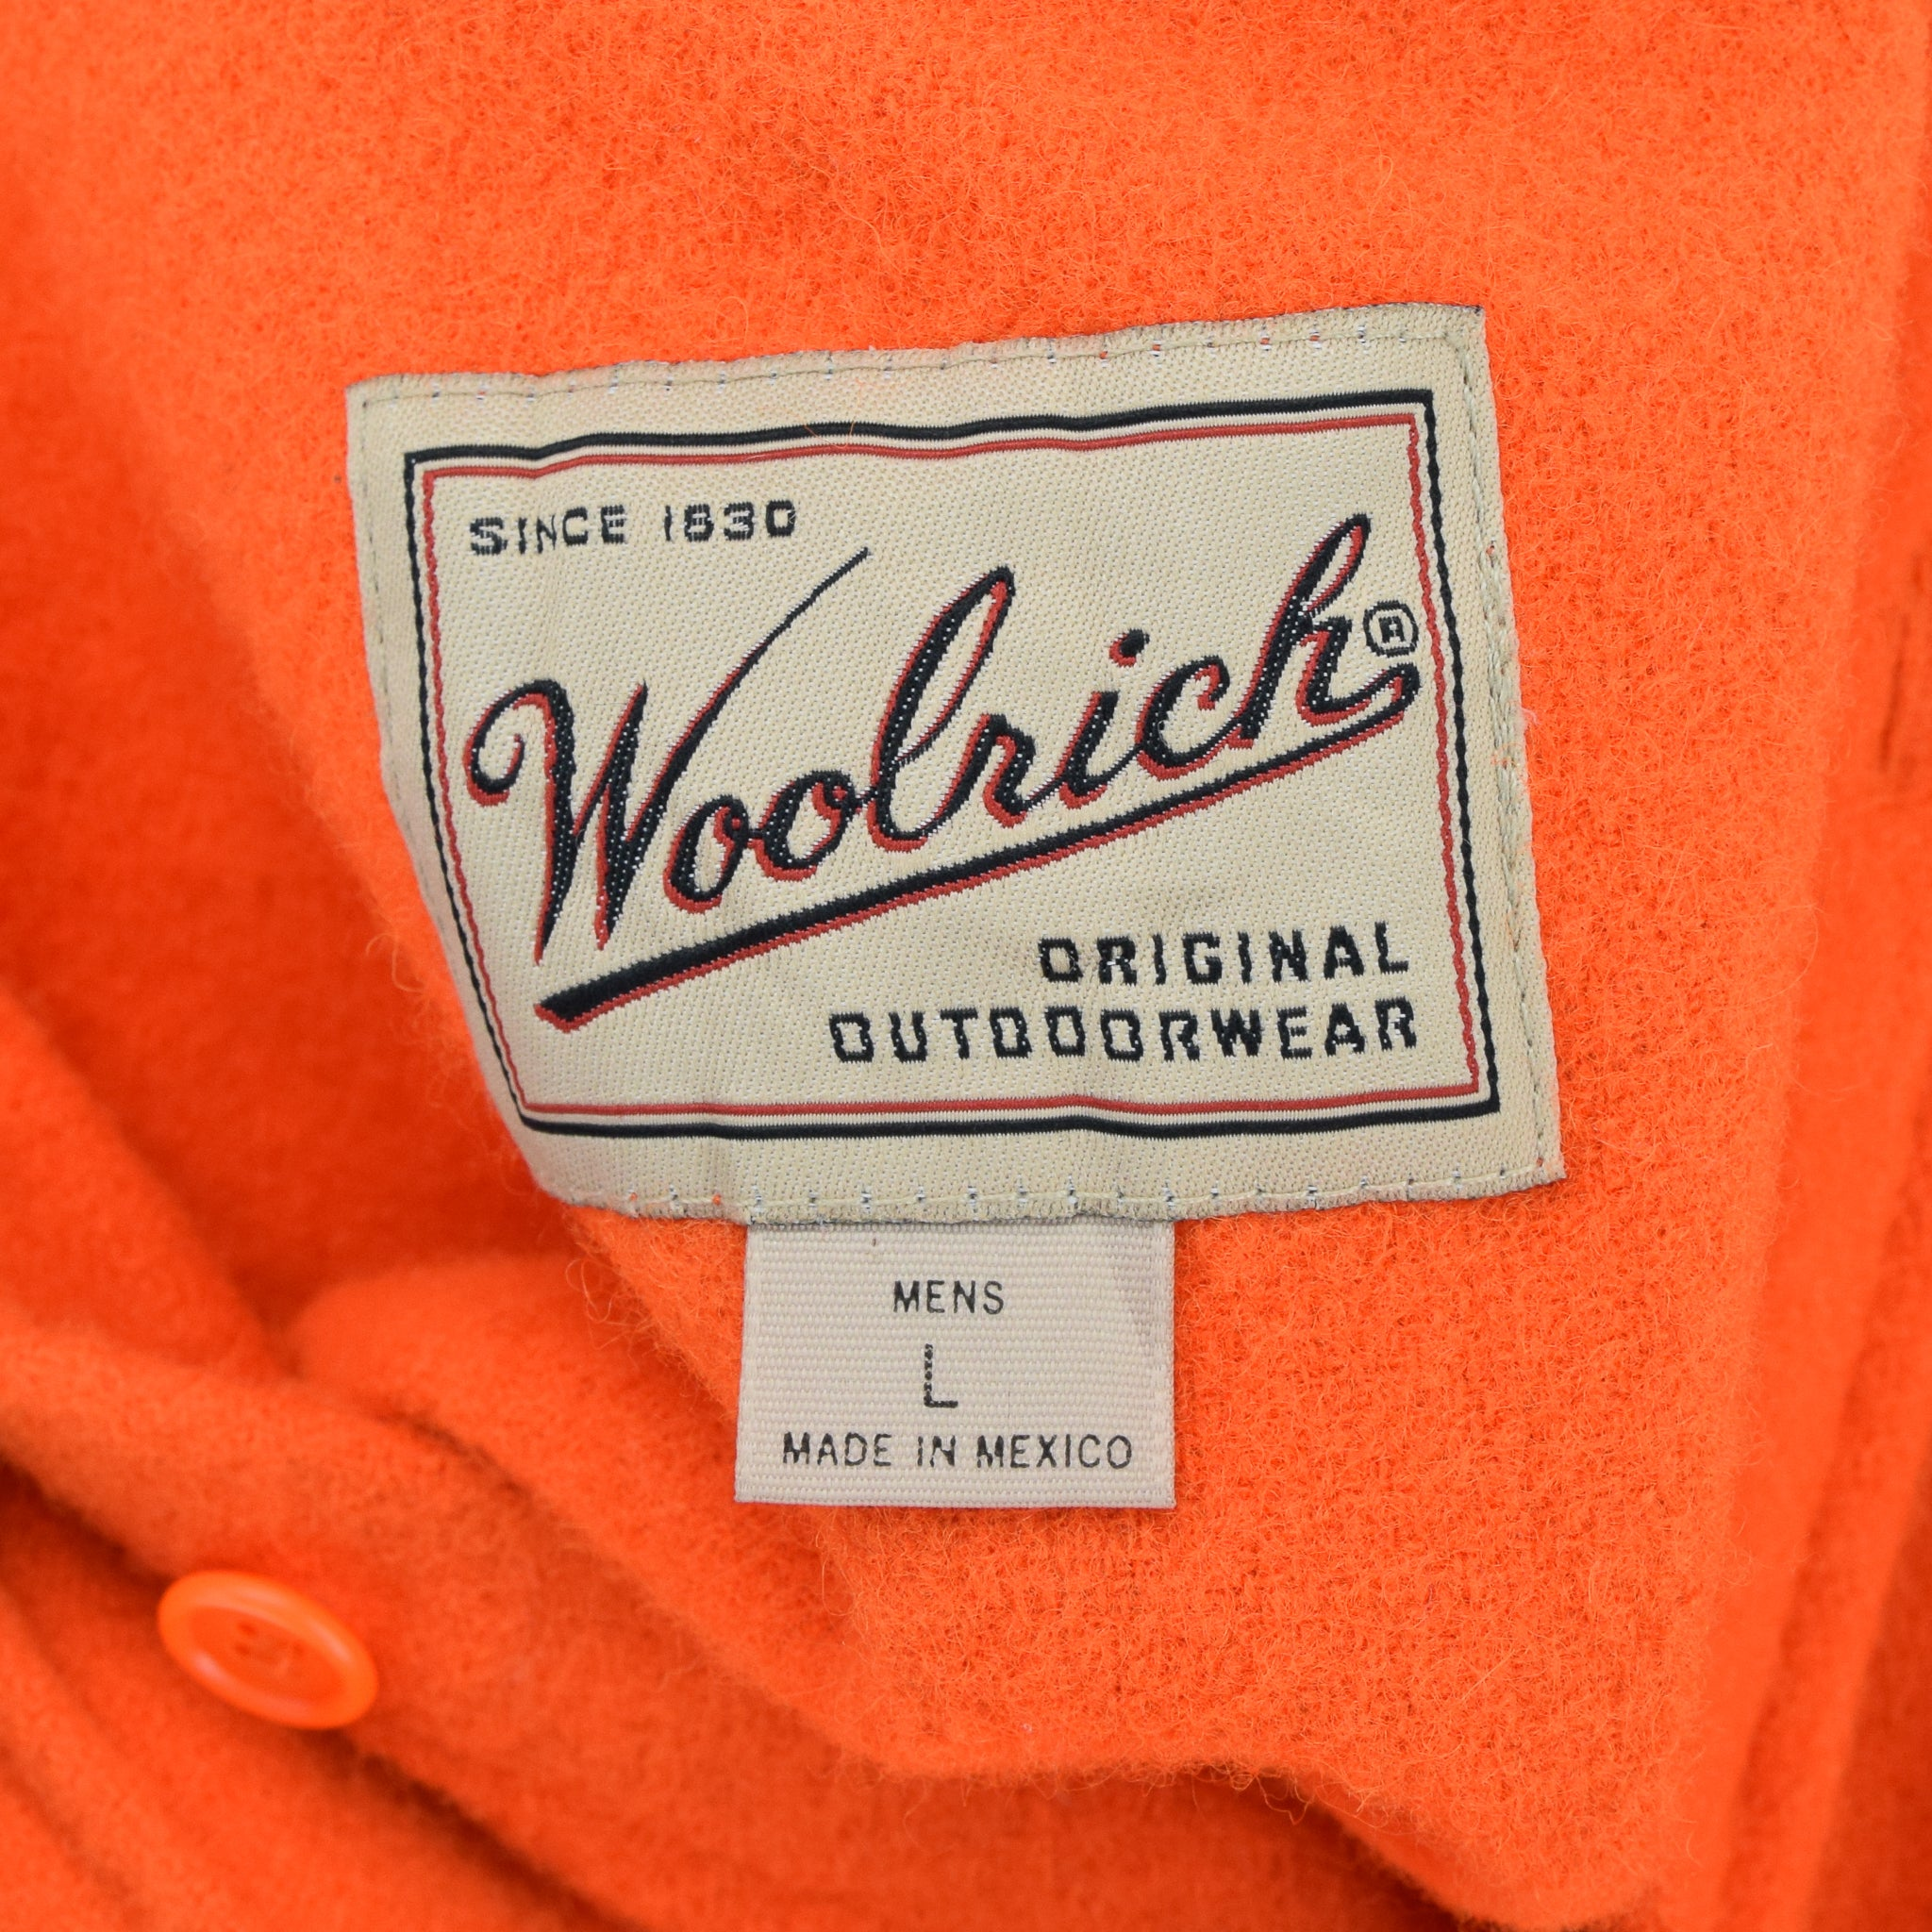 Vintage Woolrich Bright Orange Brushed Wool CPO Style Hunting Shirt Jacket M / L label